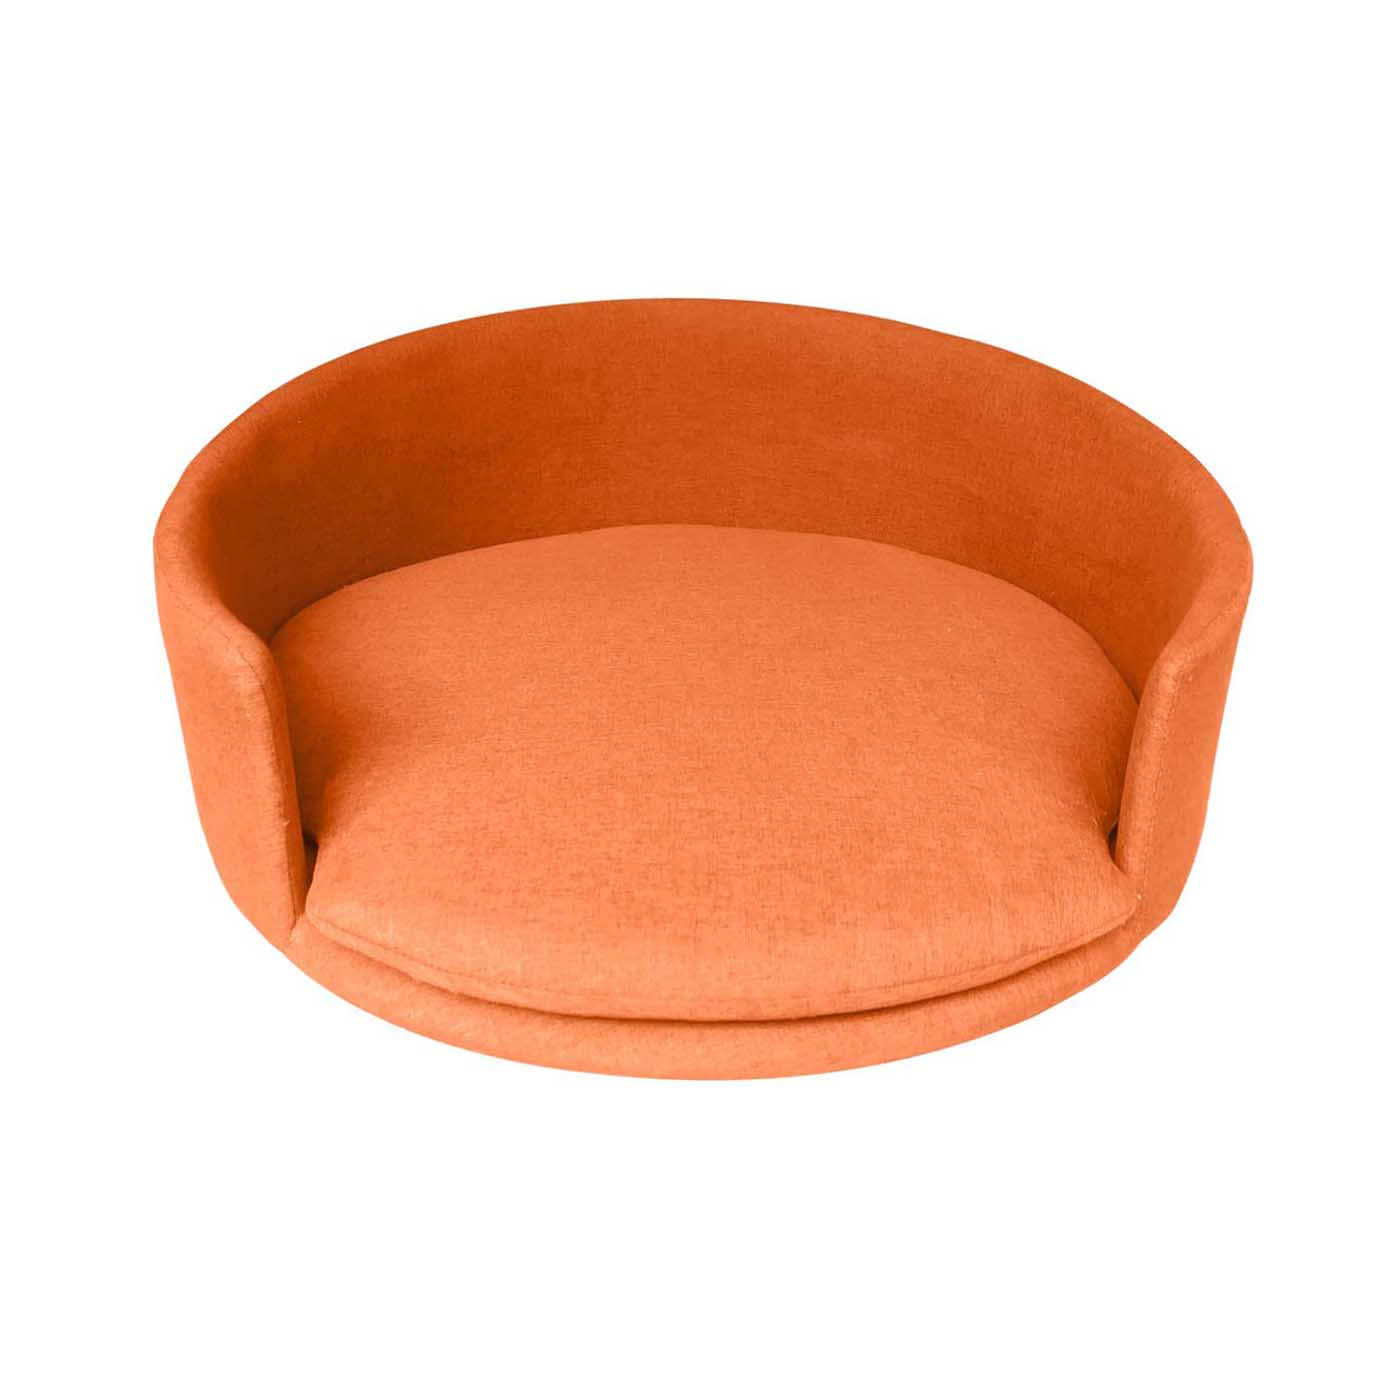 The Orange Huisdier Pet Bed